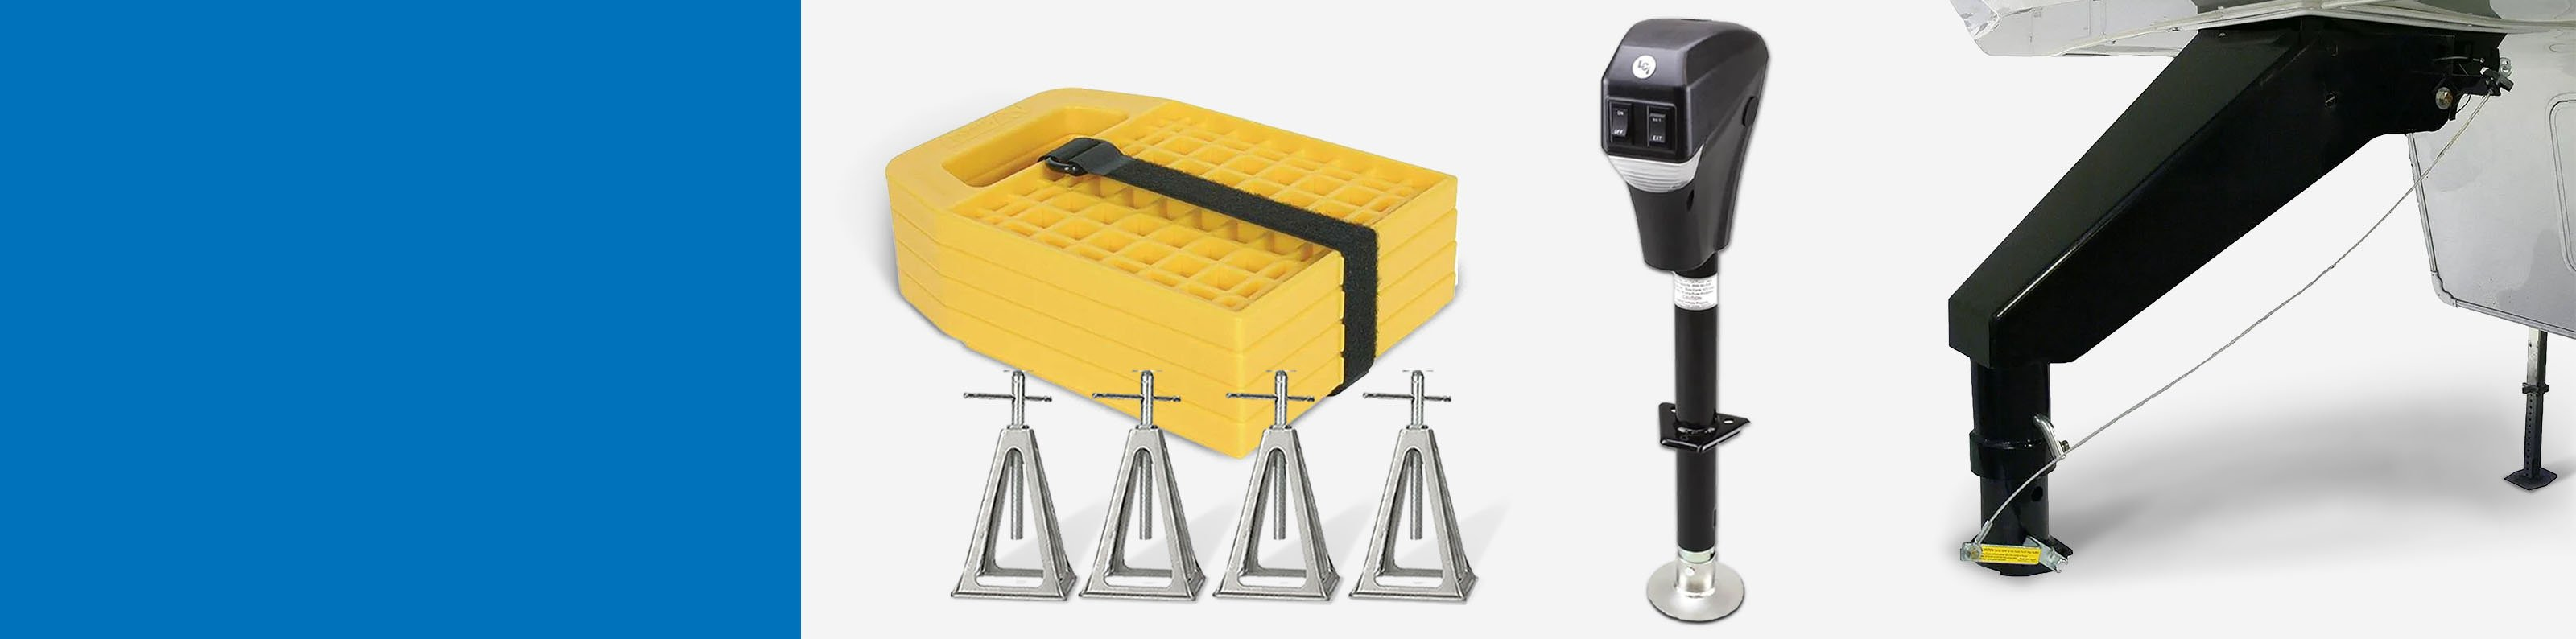 Up to 40% off Chocks & Leveling Systems